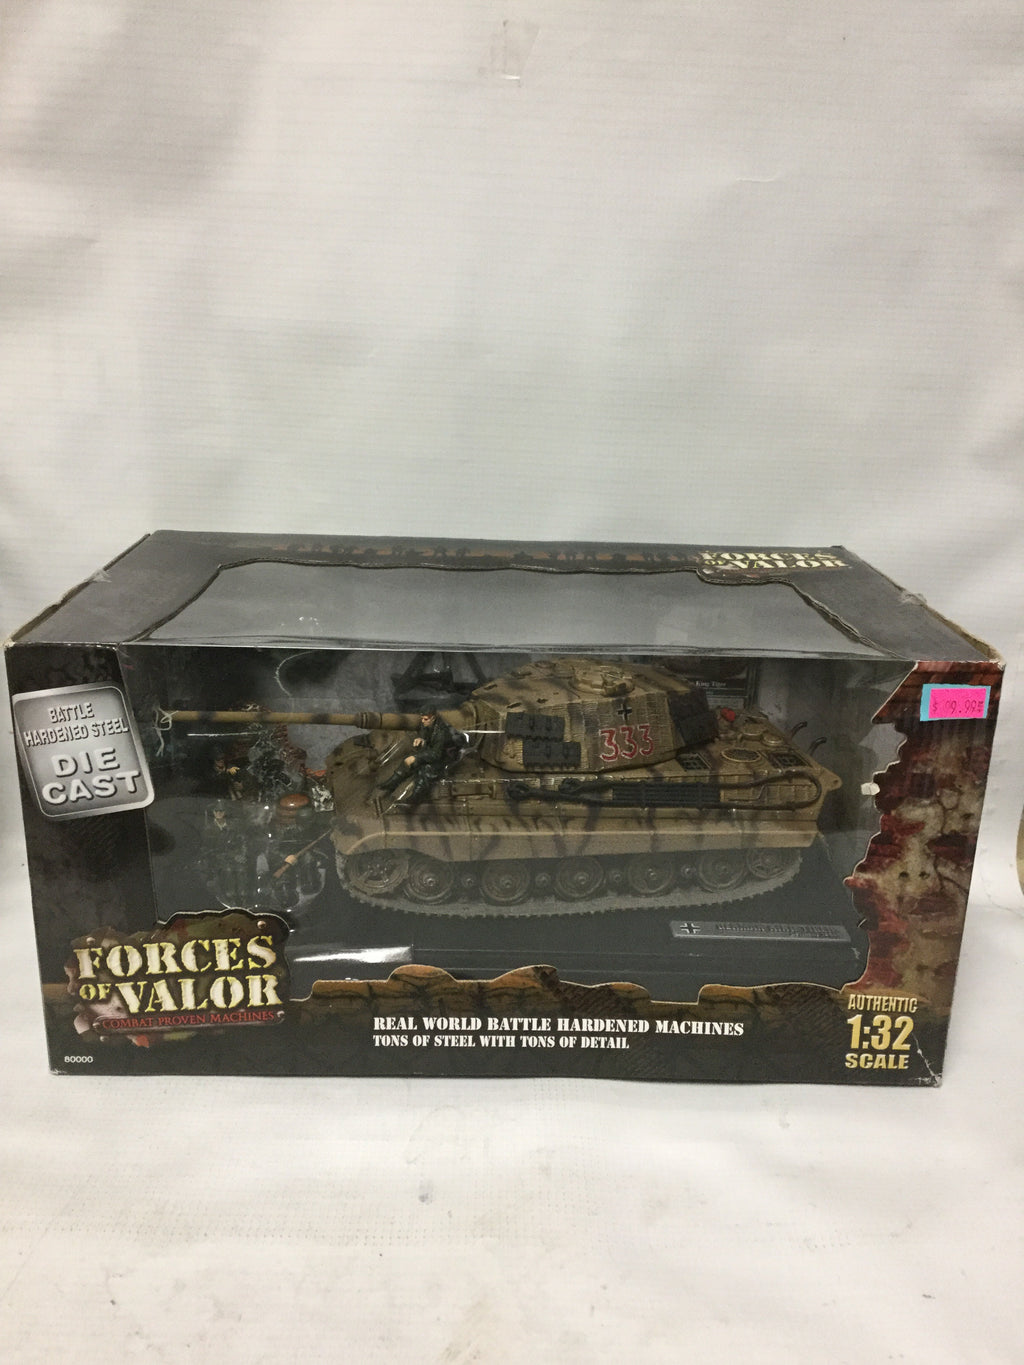 Forces Of Valor Combat Proven Machines Real World Battle Hardened Machines Tons Of Steel With Tons Of Detail